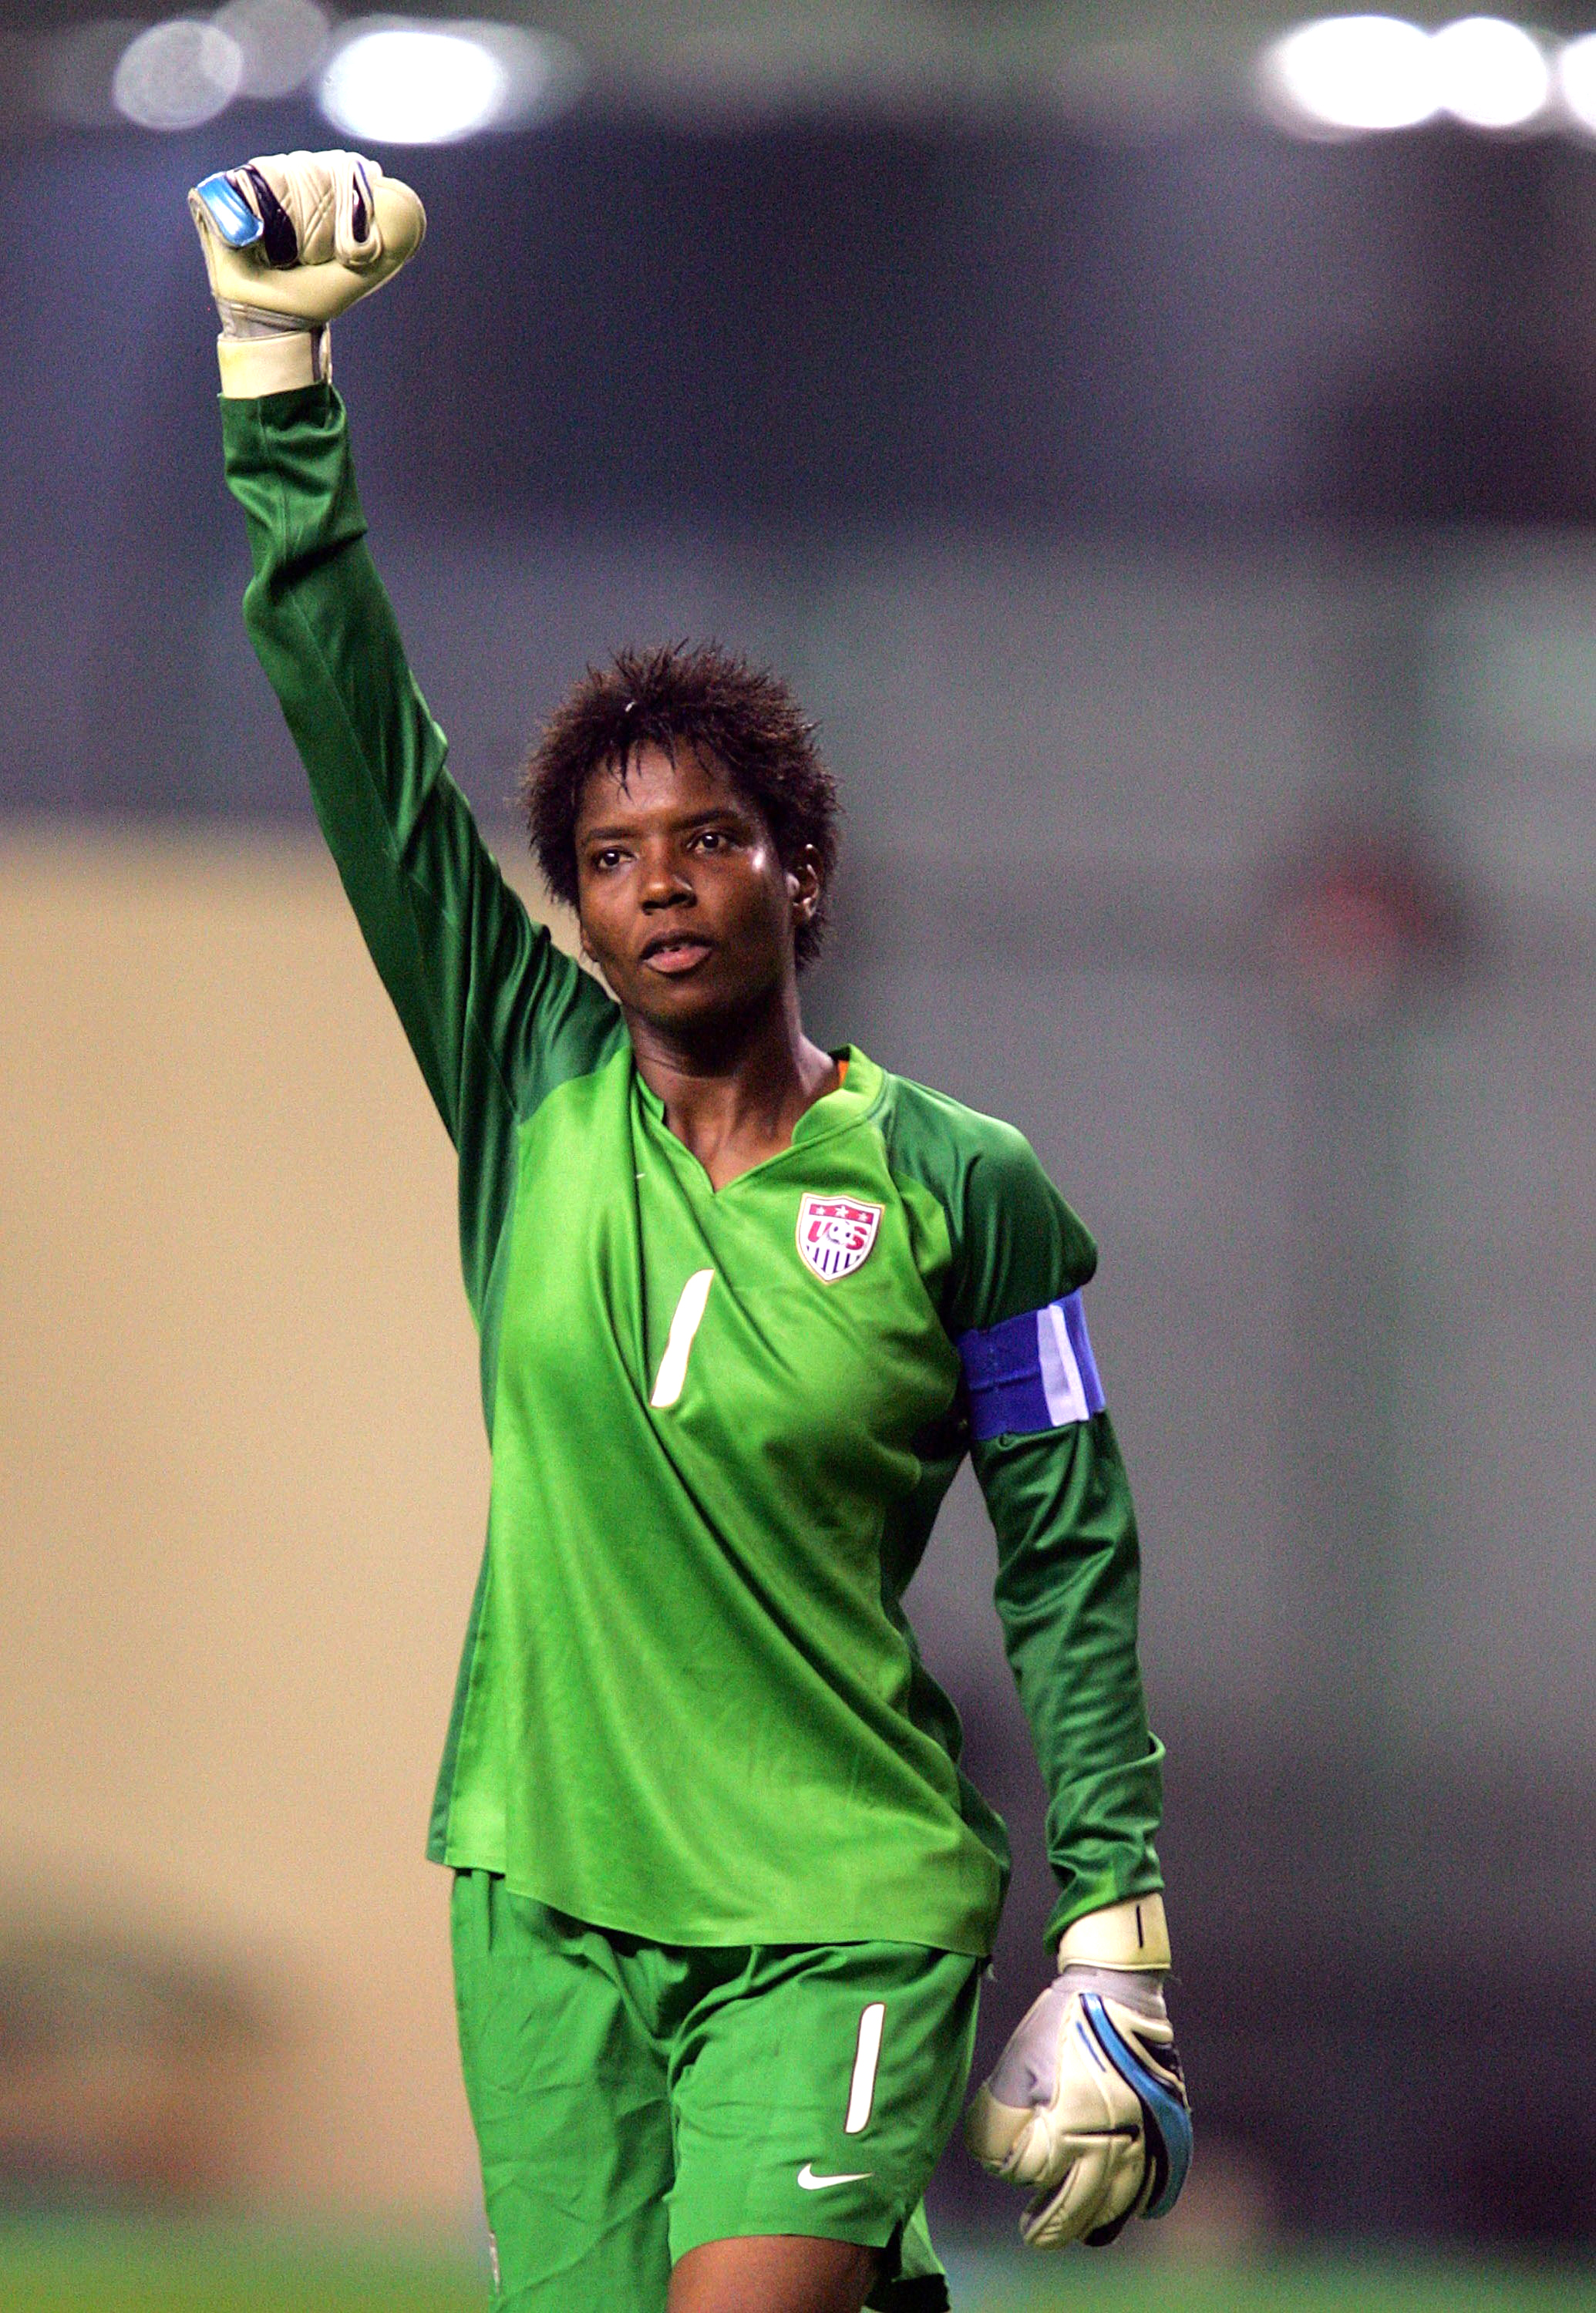 U.S. Goalkeeper Briana Scurry acknowledges the crowd after her team's 4-1 win against Norway at Hongkou Stadium in Shanghai on September 30, 2007.